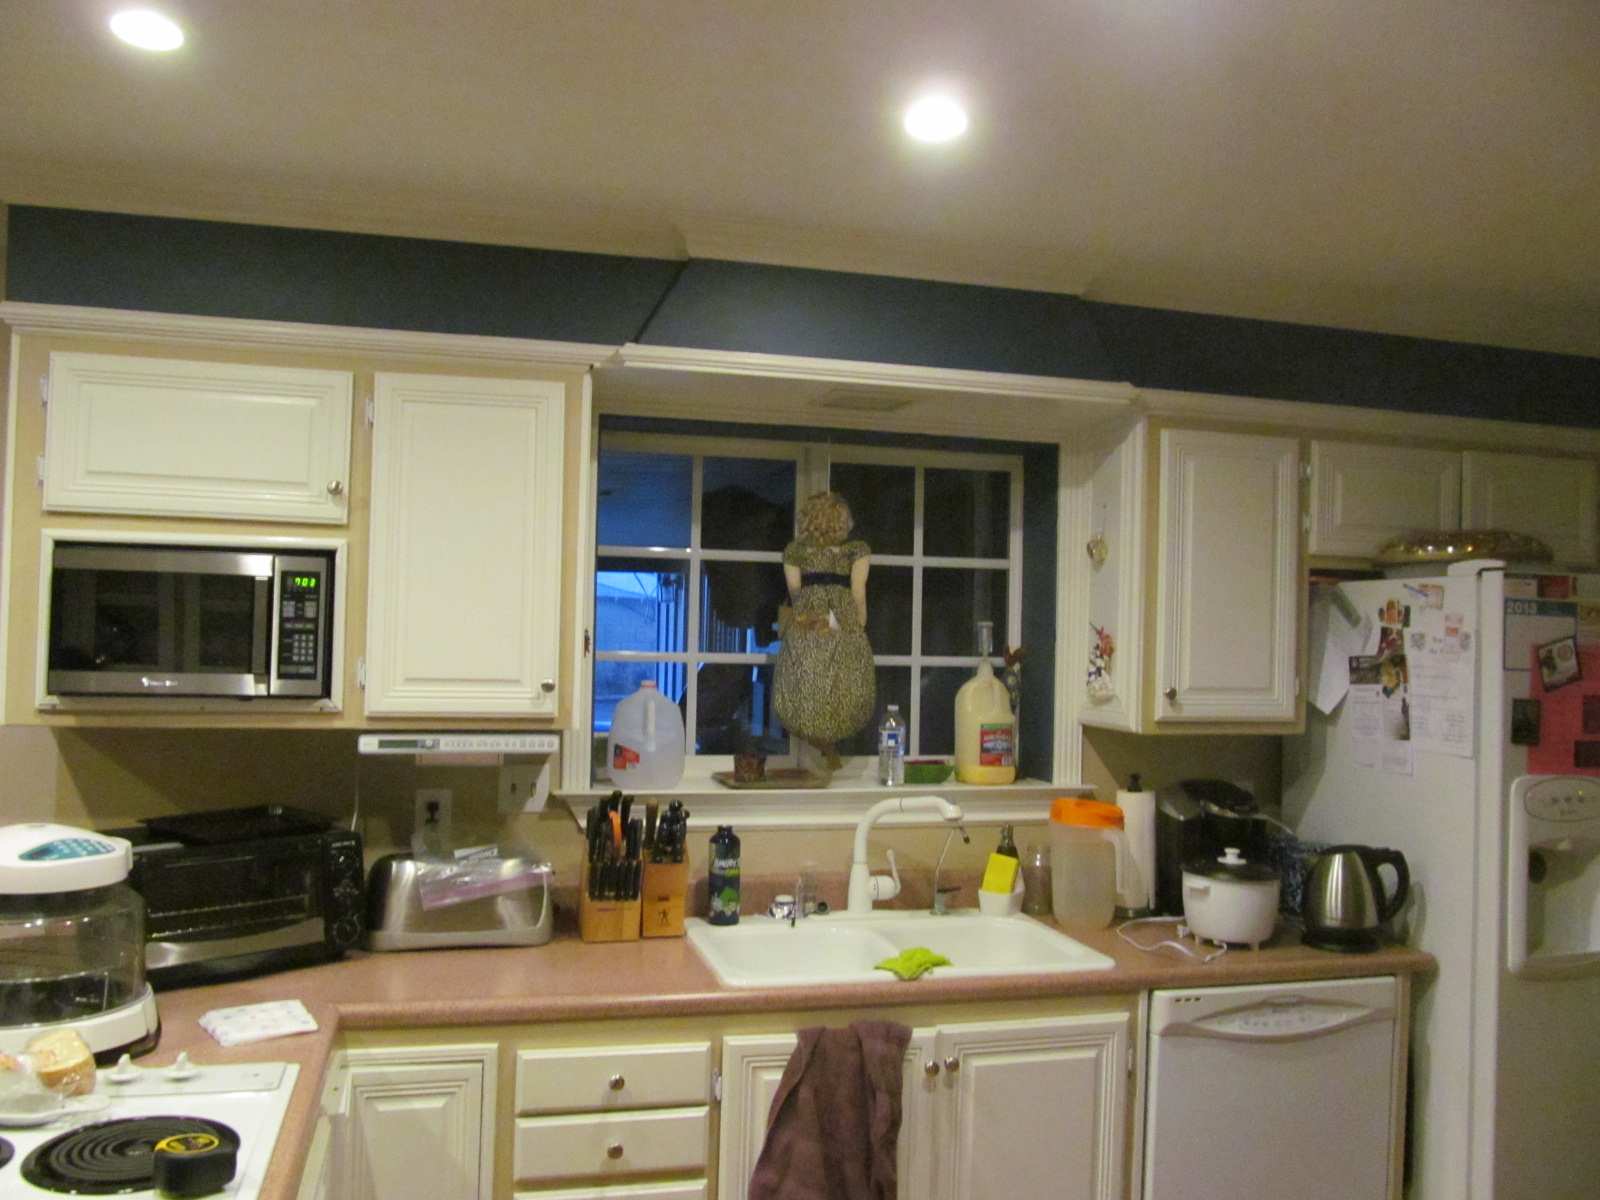 Kitchen Az Cabinets Refacing Cabinet Doors Phoenix Home Remodeling Contractor April 2013 Latest In Consultation Visit